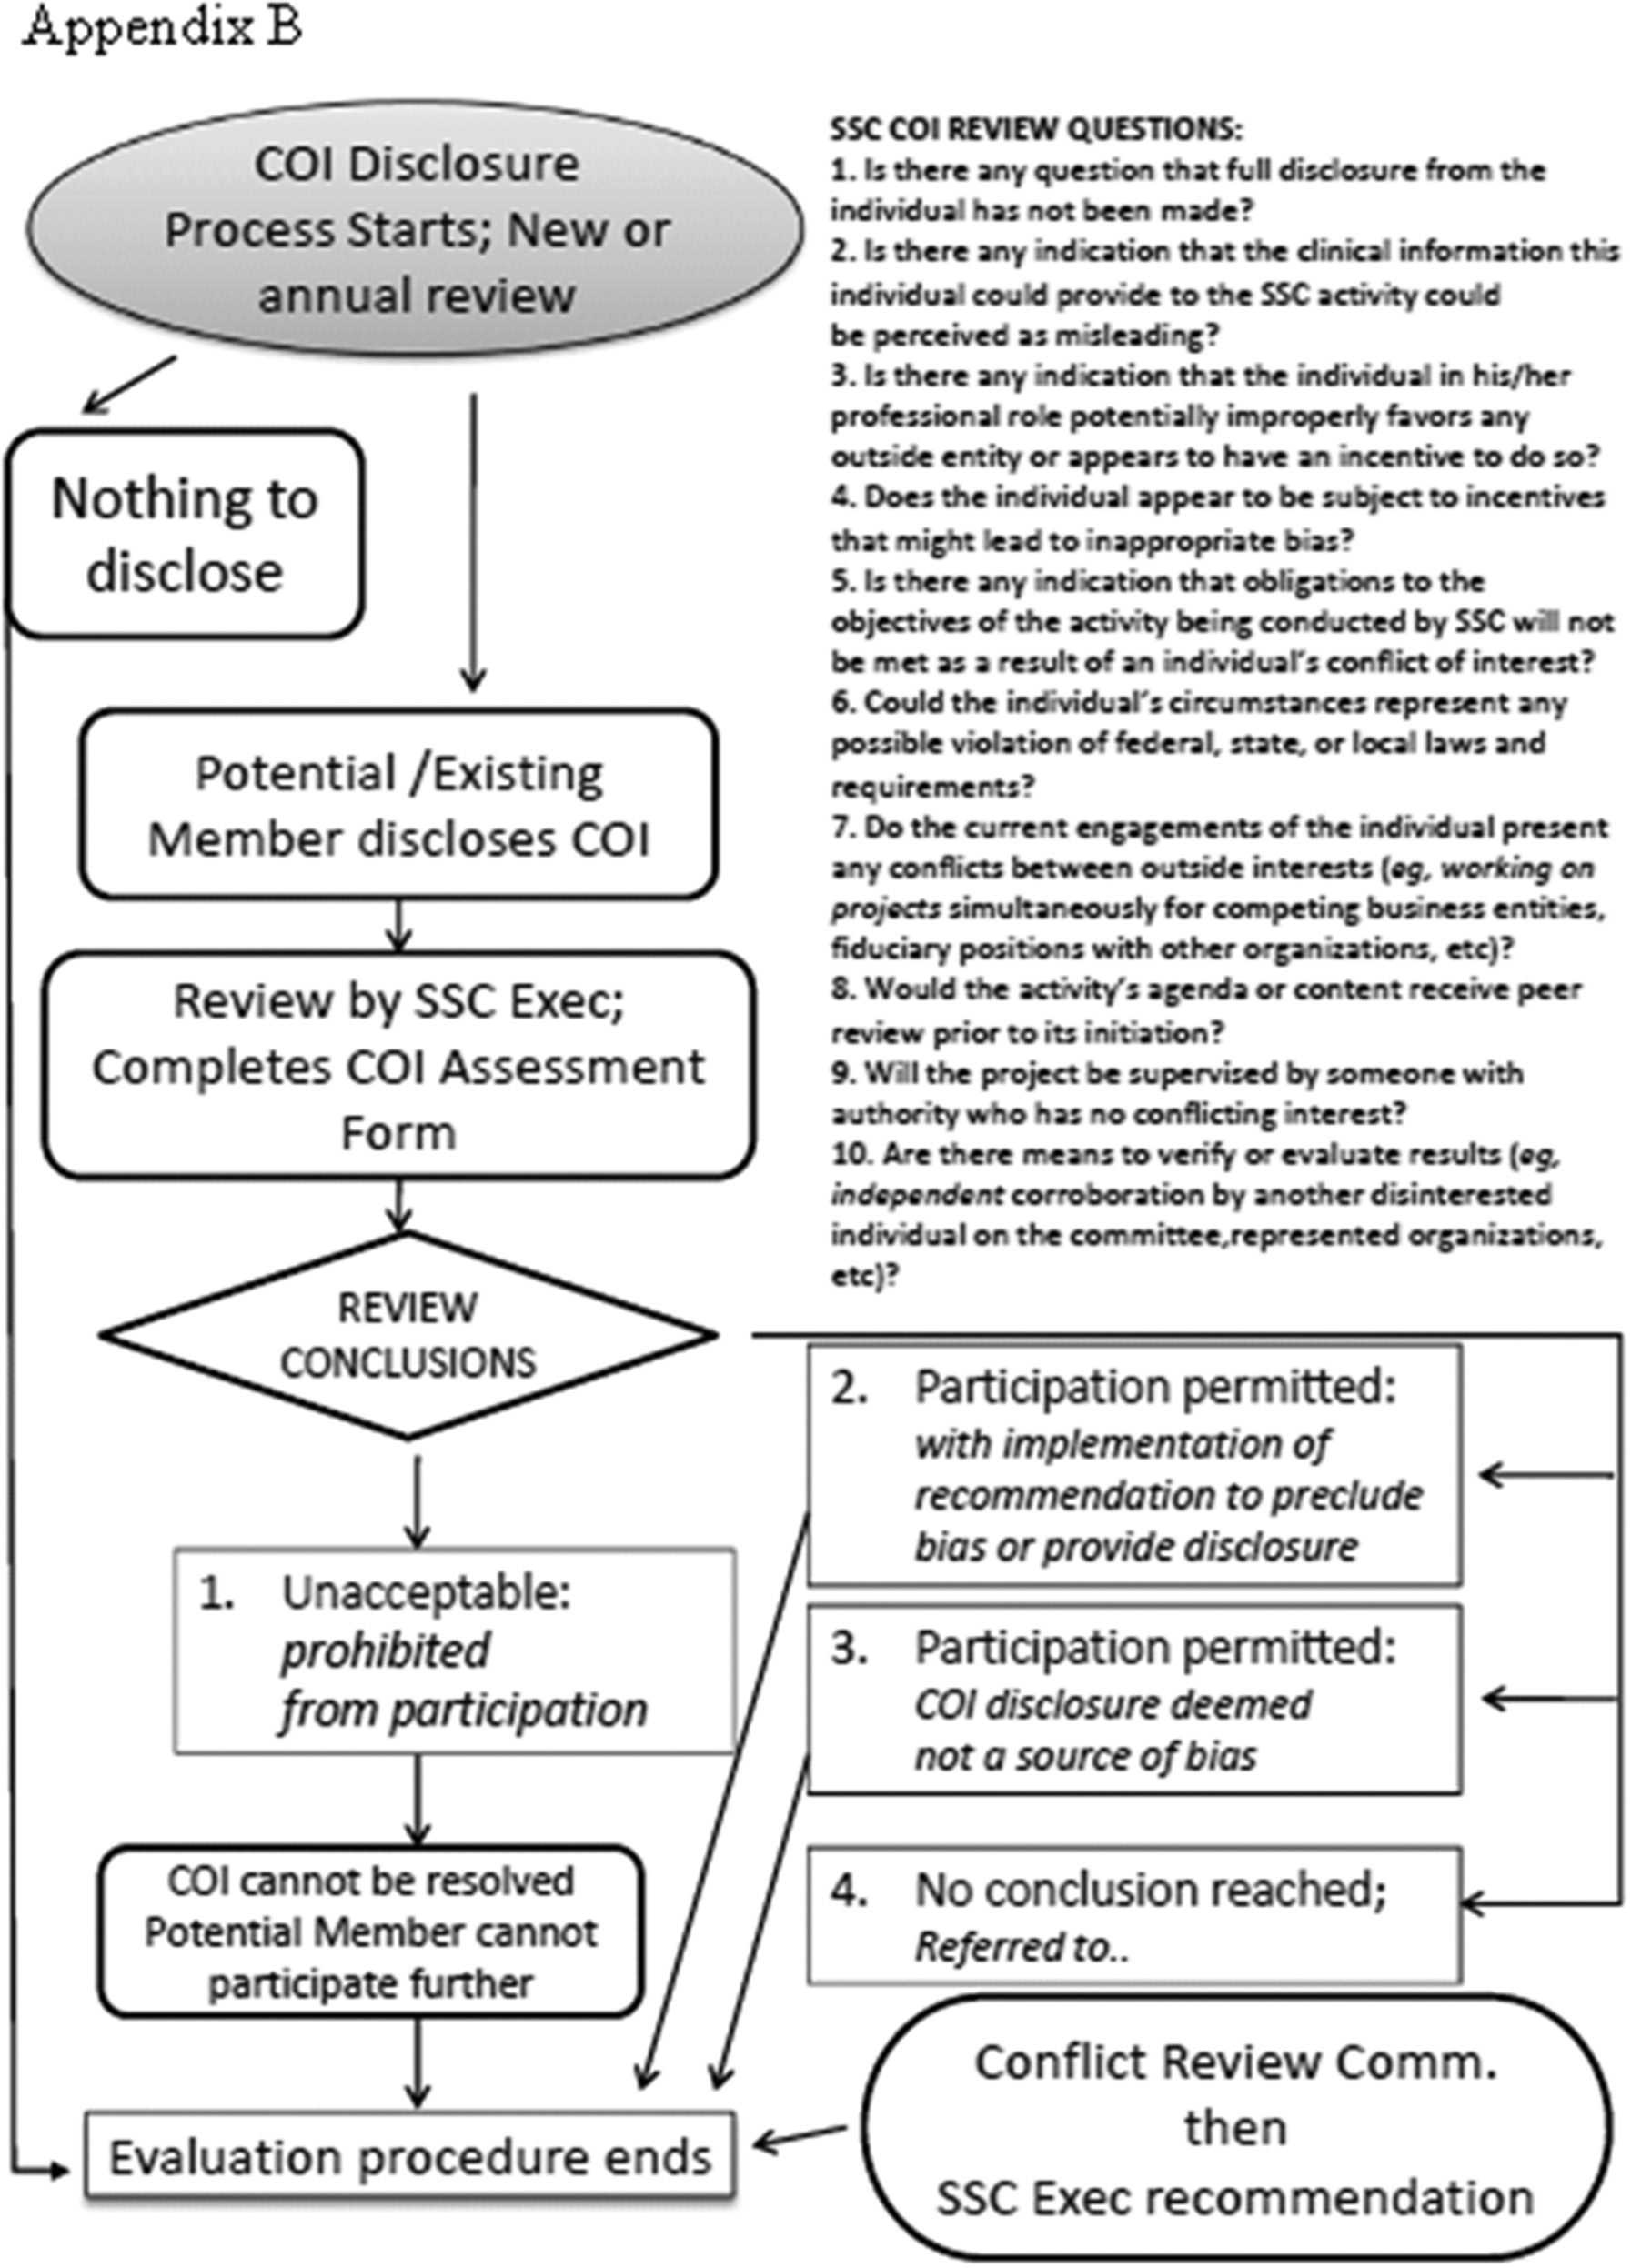 Dellinger et al Appendix B Conflict of Interest Process